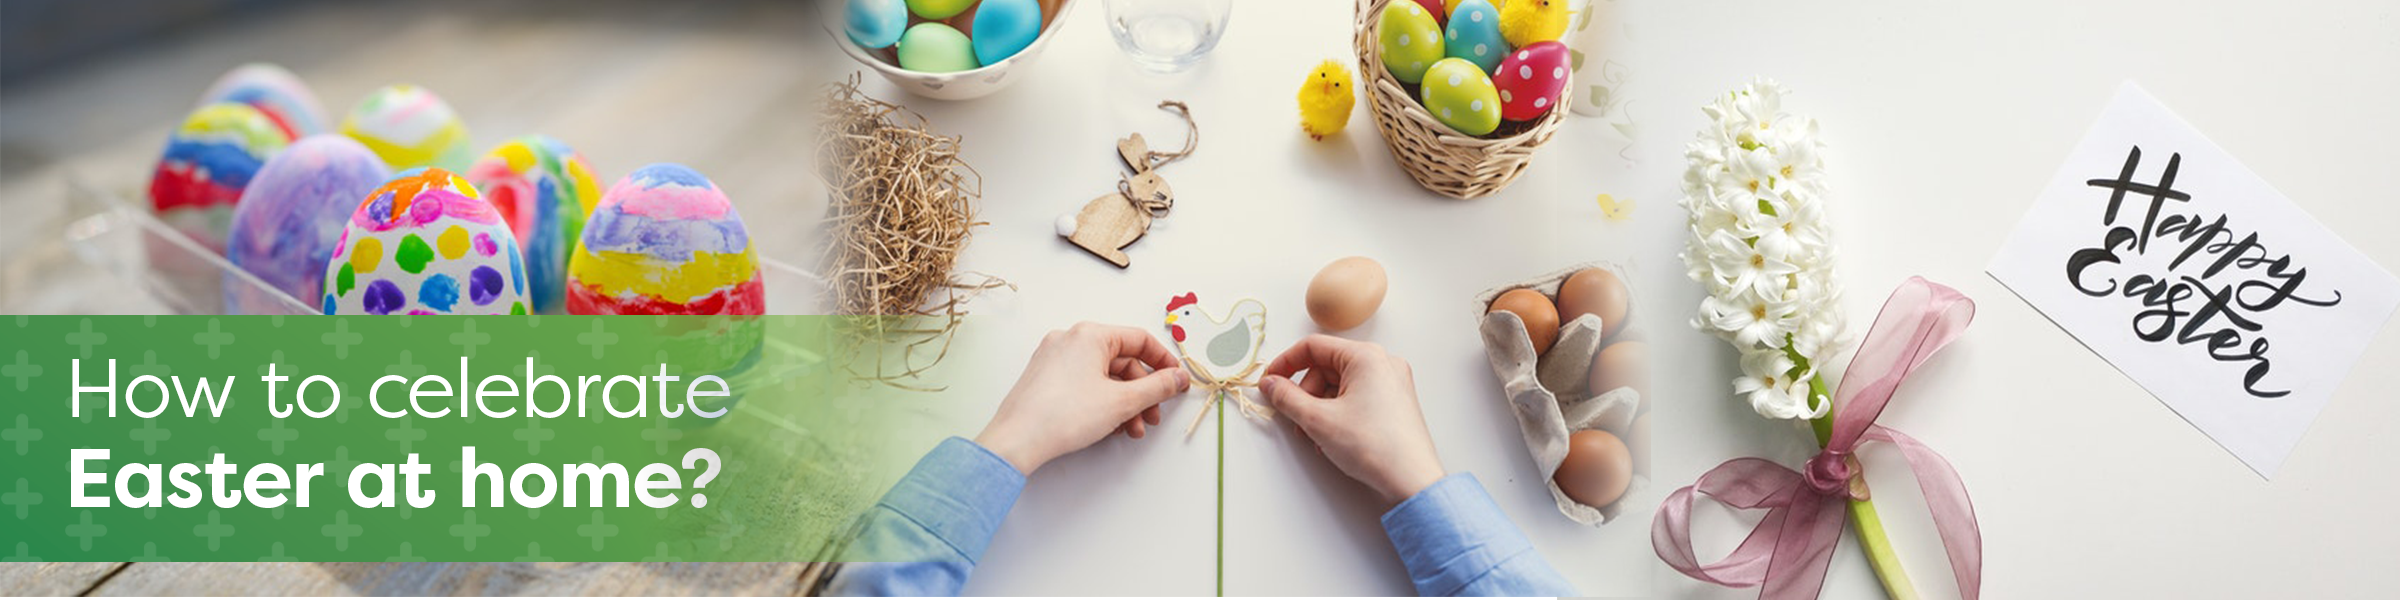 Easter at home - HealthCarePlus